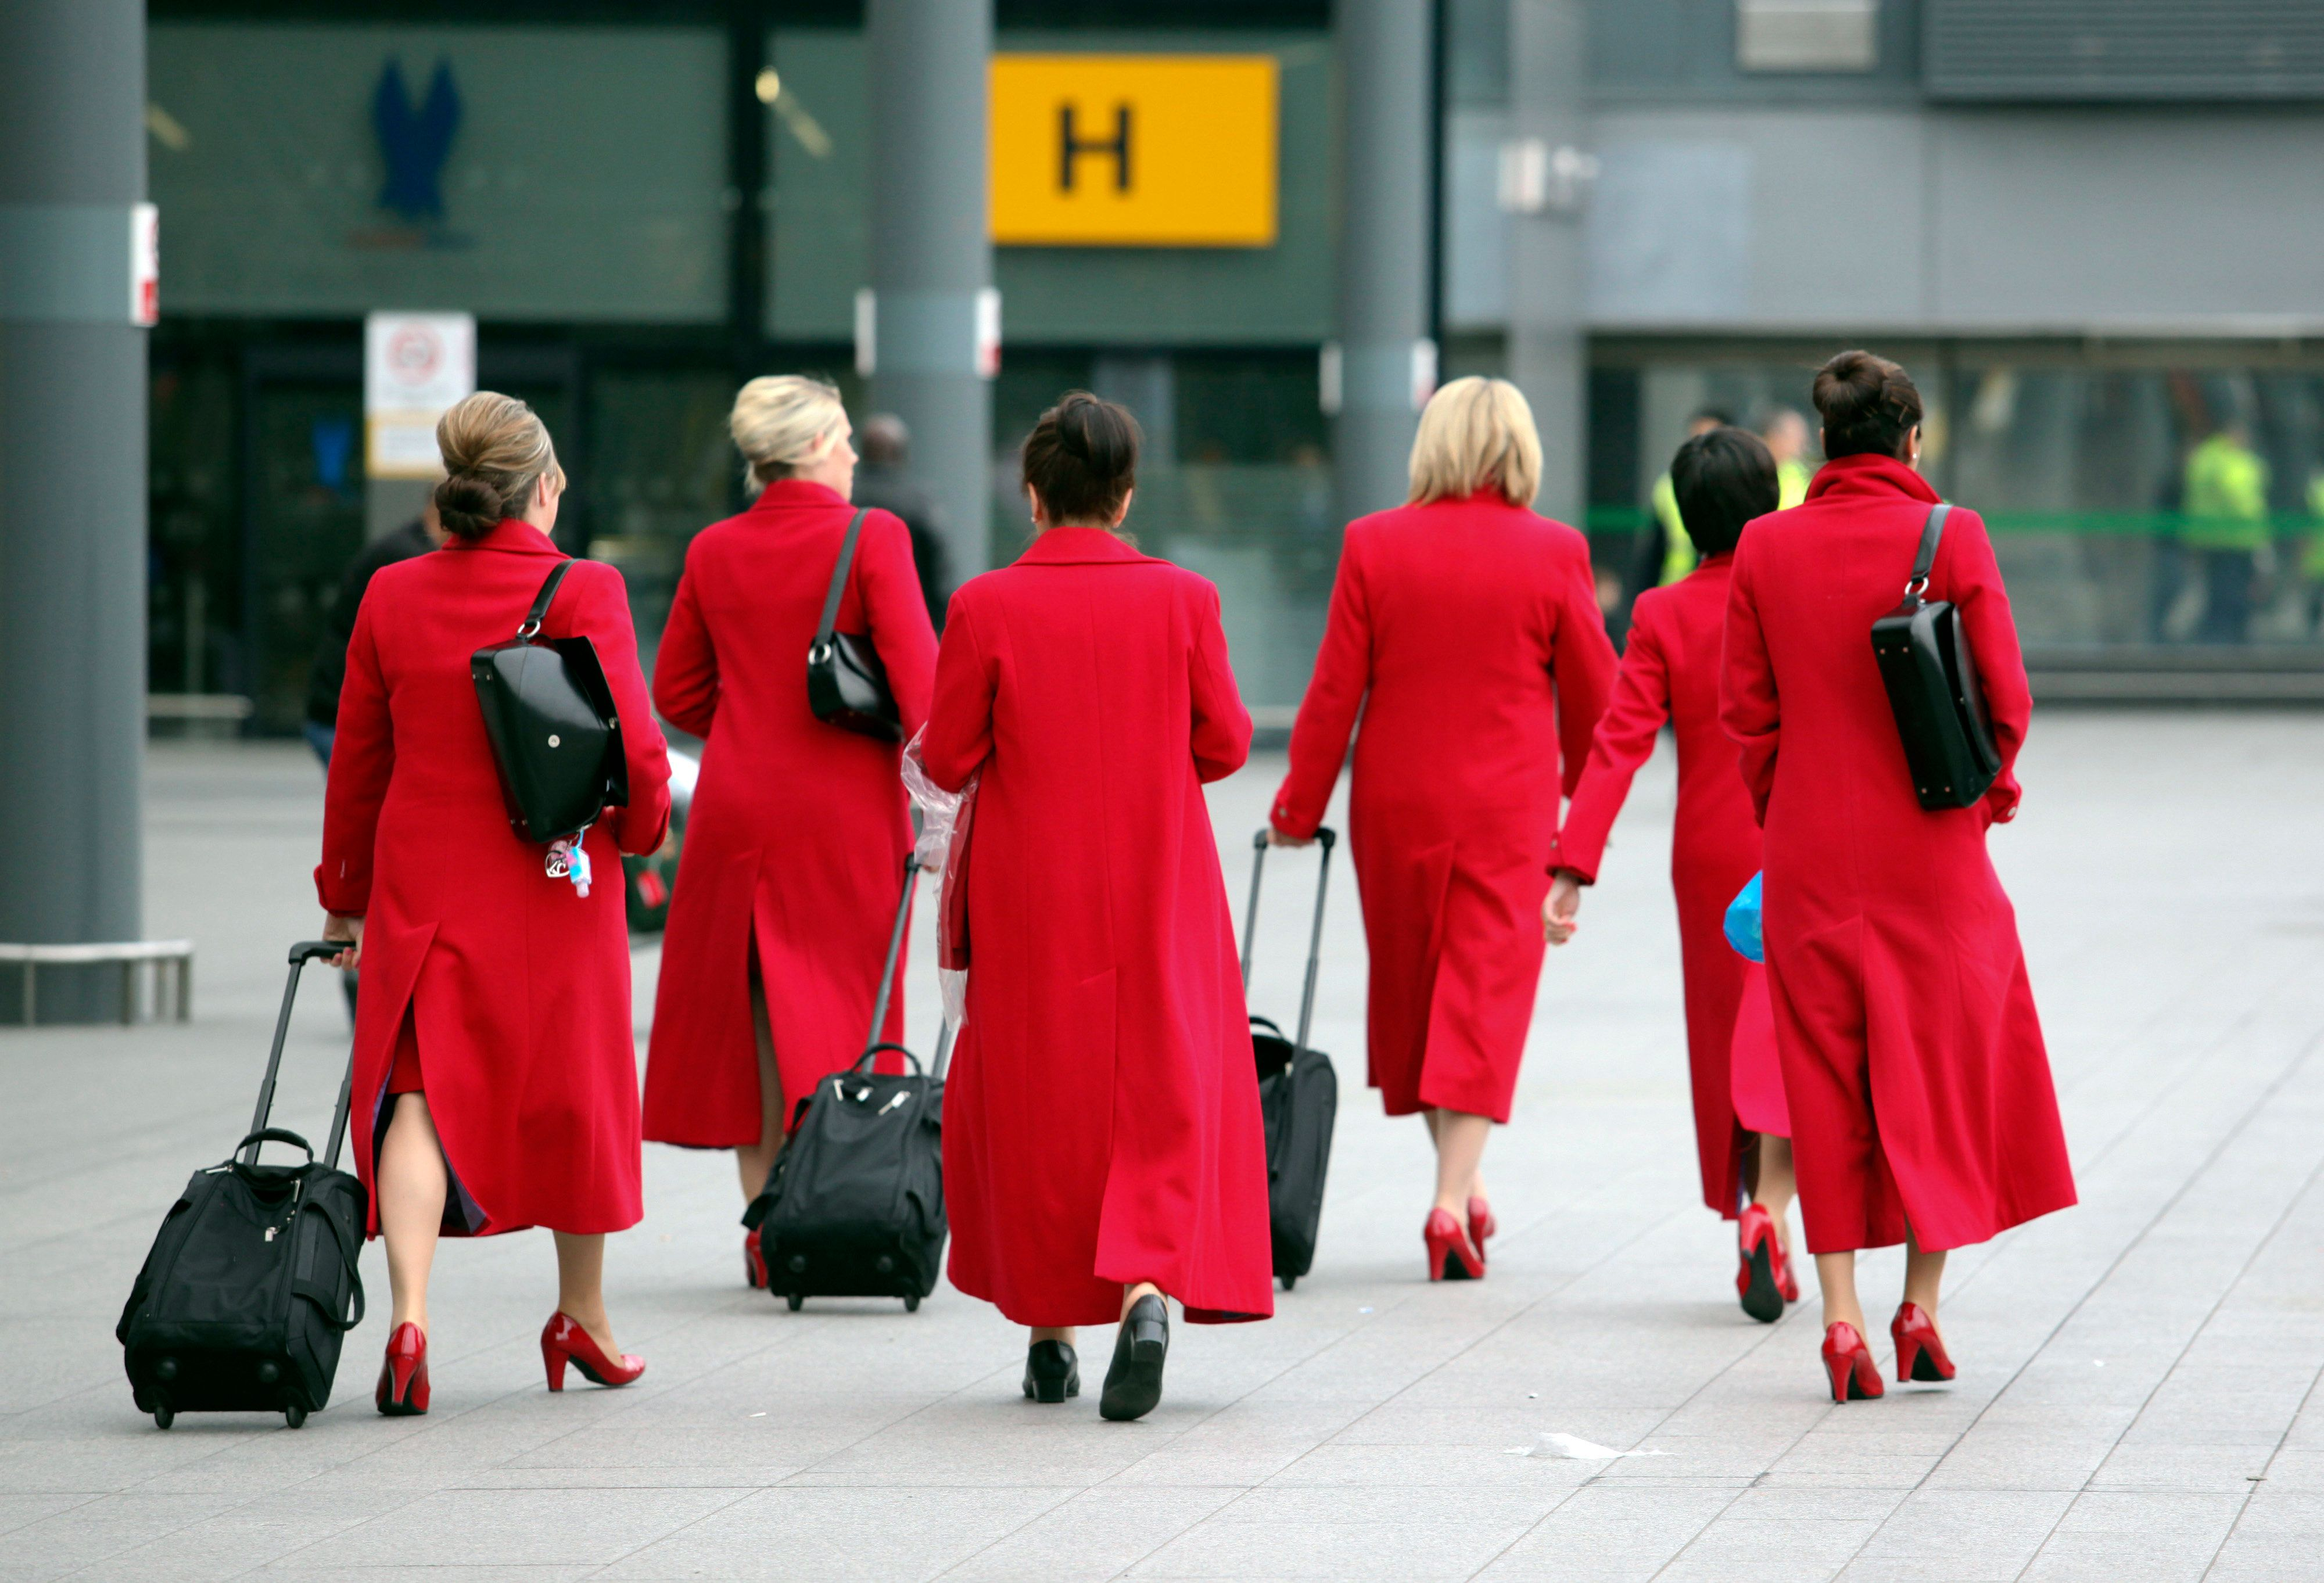 Virgin Atlantic Airways Ltd. cabin crew walk towards Terminal 3 at Heathrow airport, operated by BAA Ltd., in London, U.K., on Wednesday, Jan. 11, 2012. BAA Ltd.'s London Heathrow airport, the busiest in Europe, handled a record 69.4 million passengers last year, pushing it to the limits of capacity constraints. Photographer: Chris Ratcliffe/Bloomberg via Getty Images